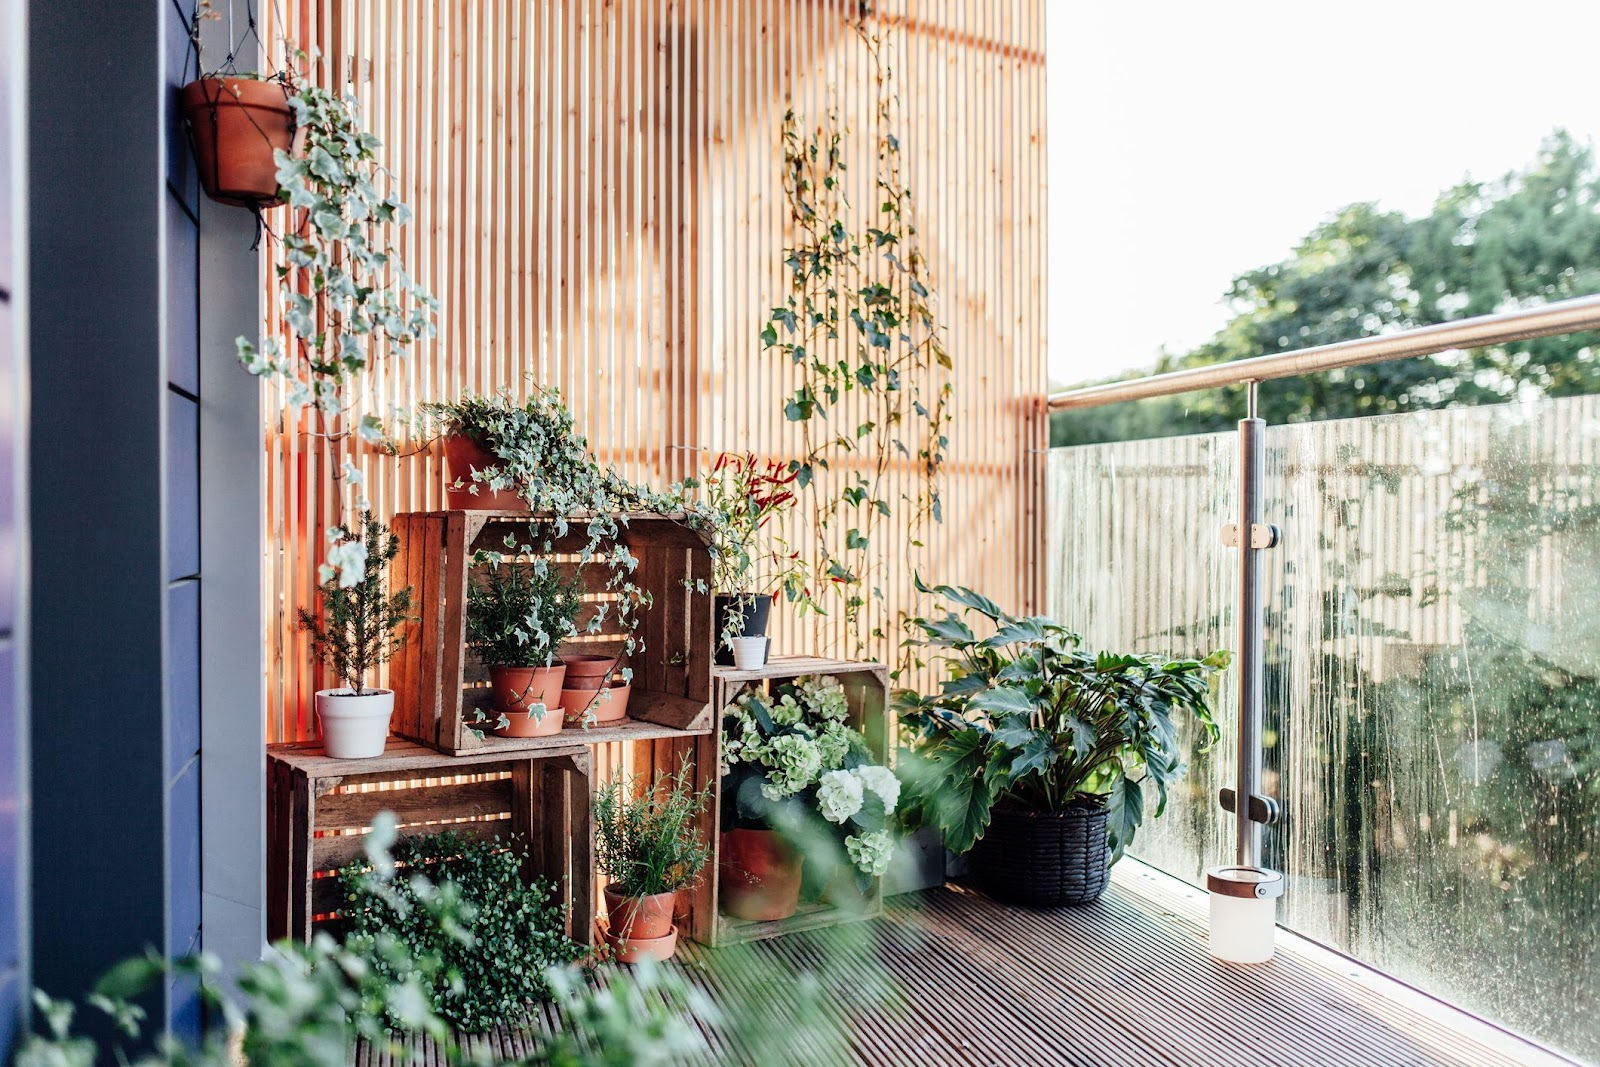 BALCONY BASICS: WORKING WITH SMALL SPACES